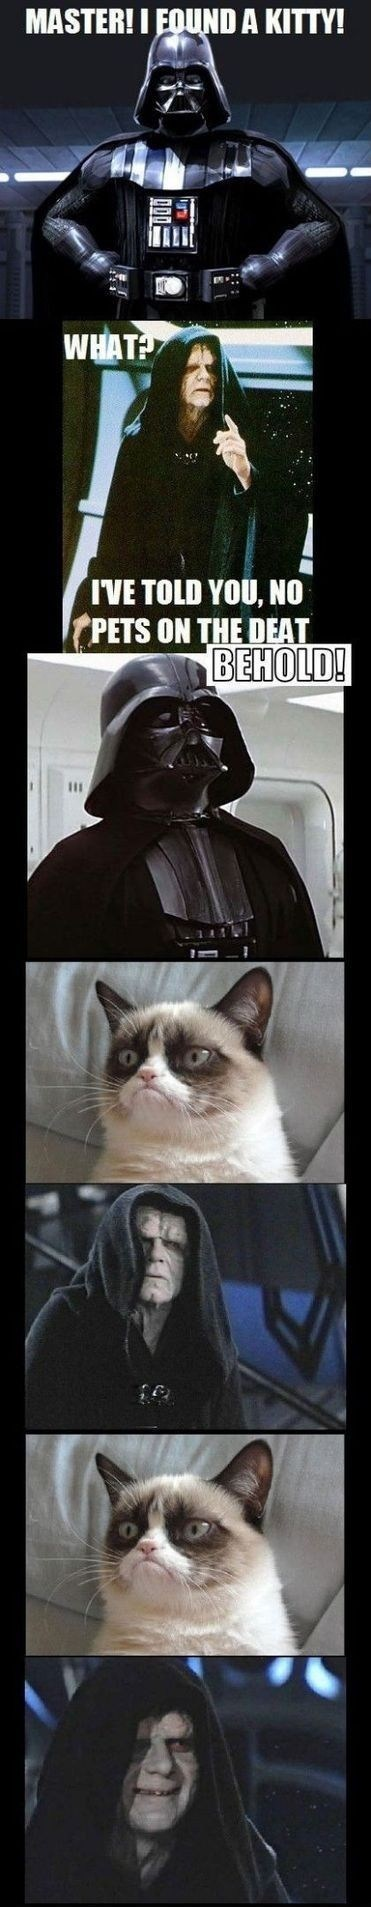 star wars Movie Grumpy Cat tard darth vader - 6893740032